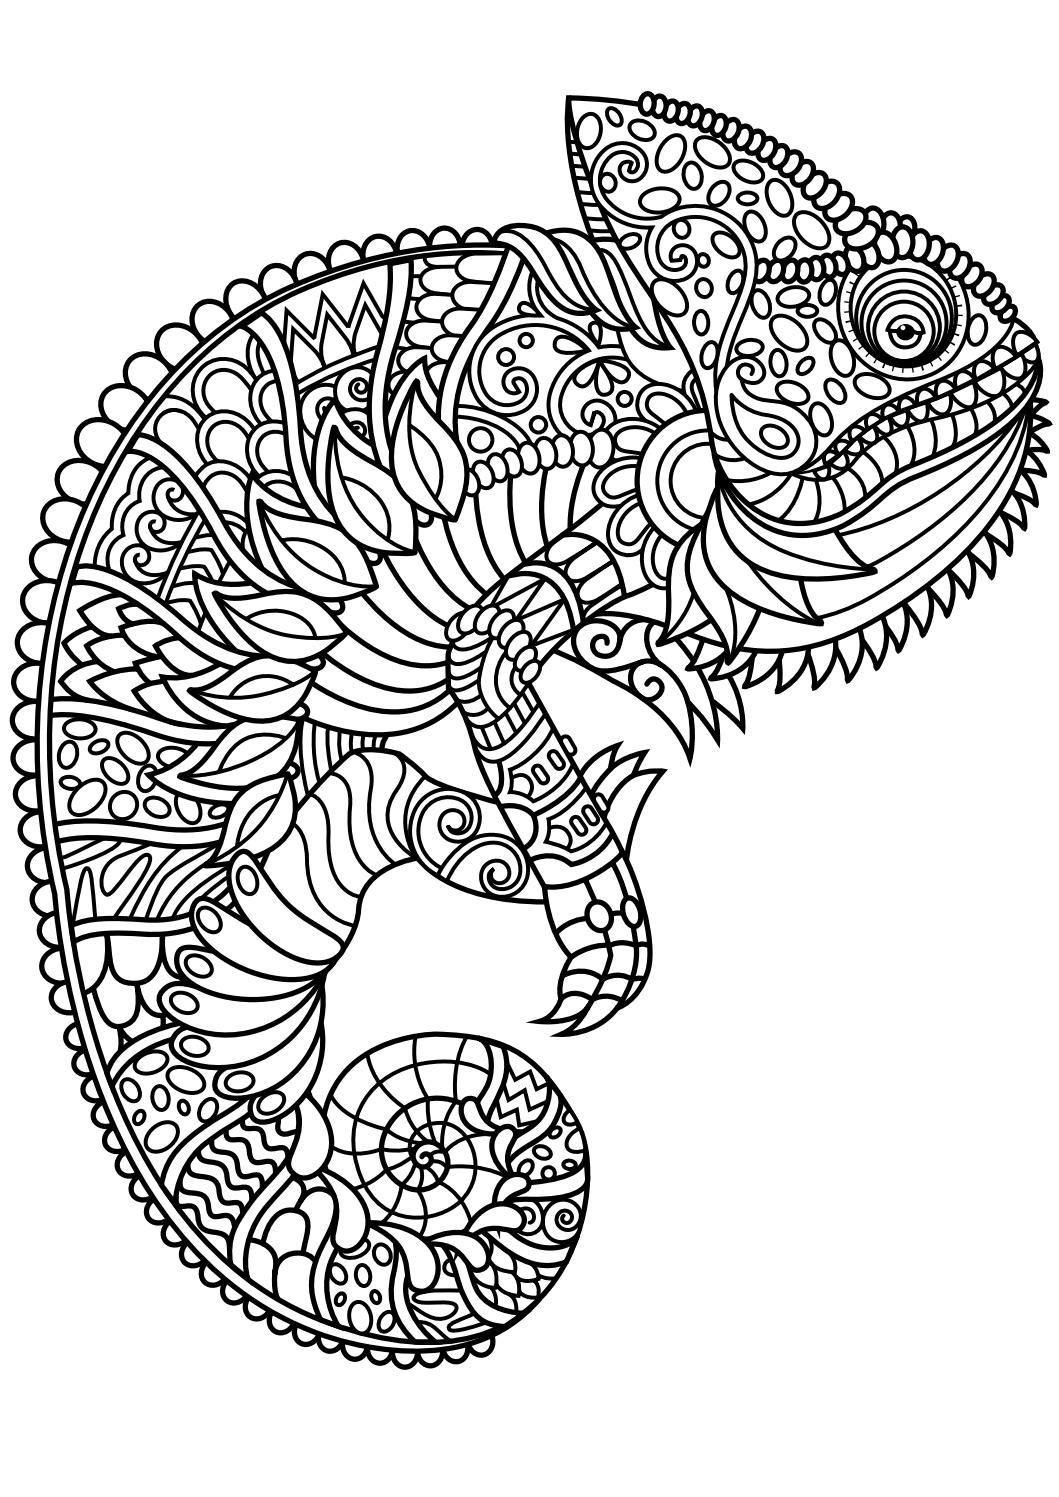 Coloring Book For Kids Pdf  Animal coloring pages pdf Coloring Animals